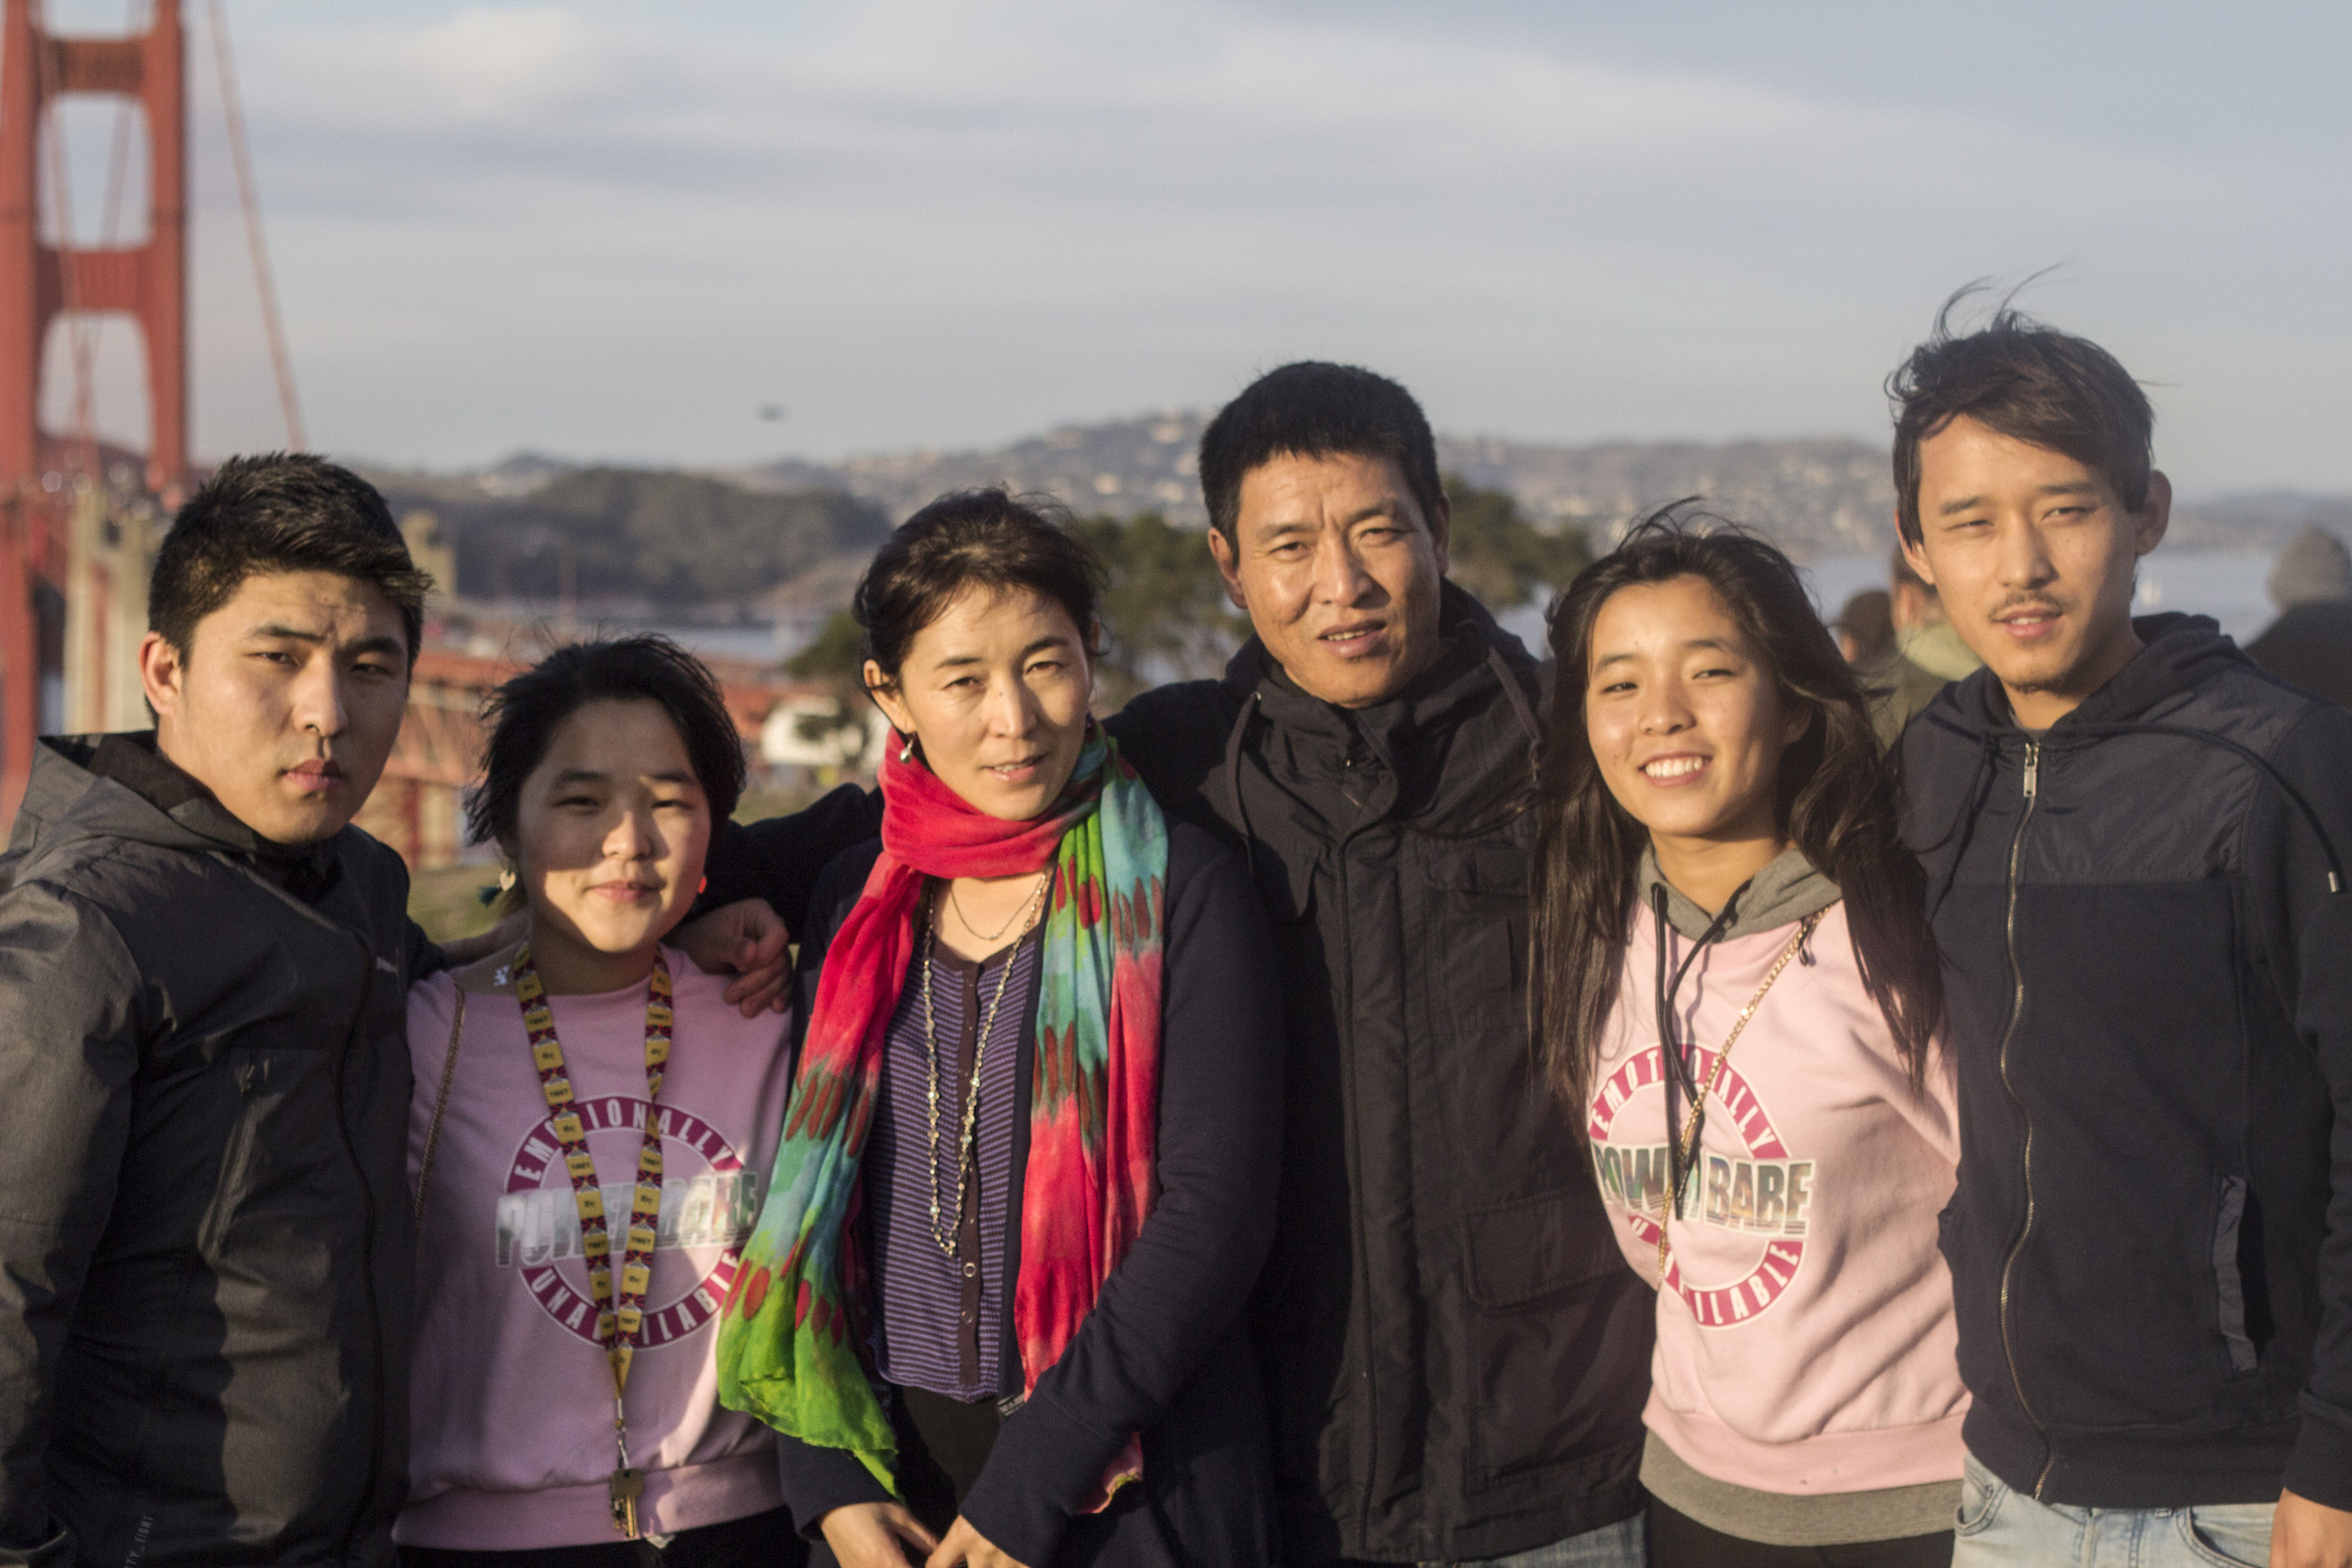 Dhondup Wangchen arrives safely in the United States